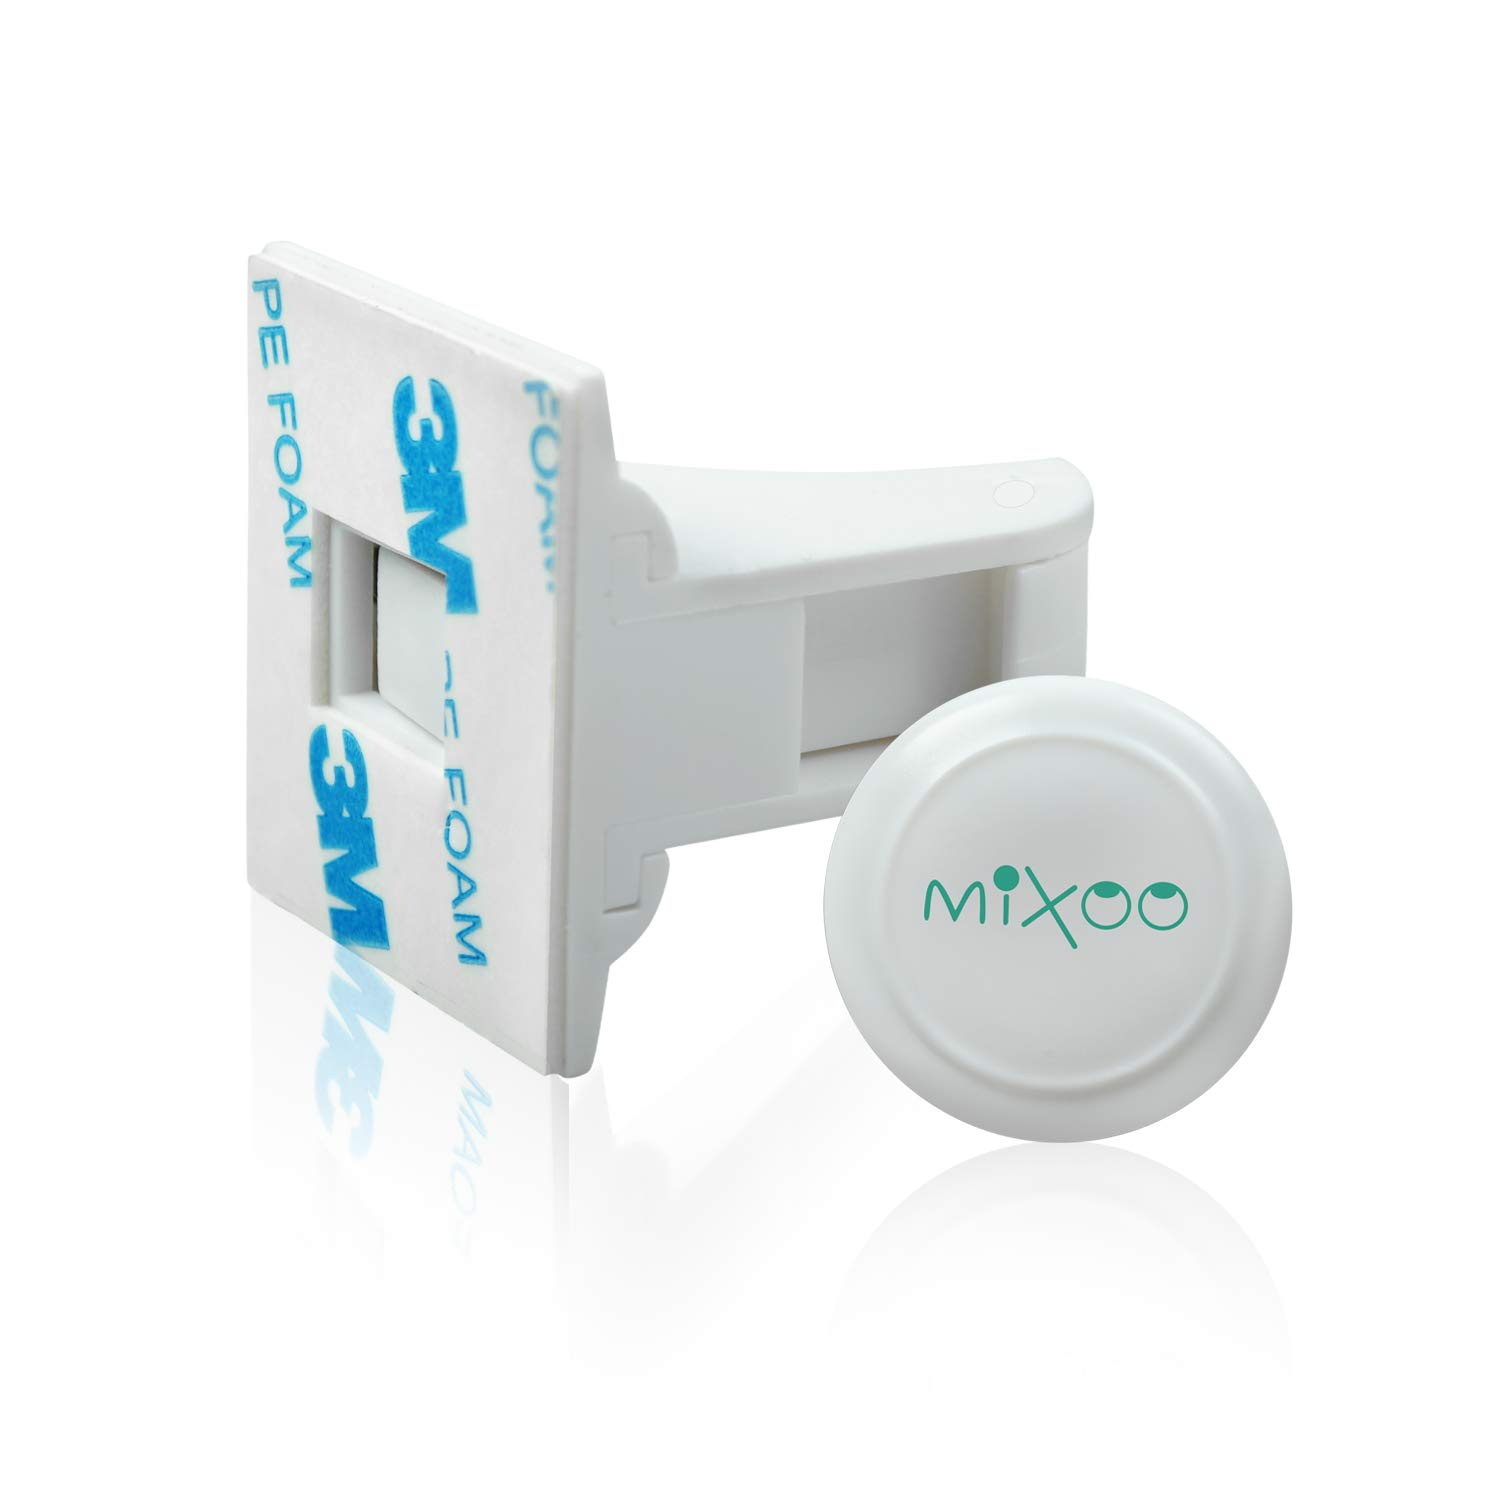 Mixoo Baby Proofing Magnetic Cabinet Locks Child Safety for Drawer, Cupboard,Closet, No Tools or Screws Needed (16 Locks + 3 Keys)